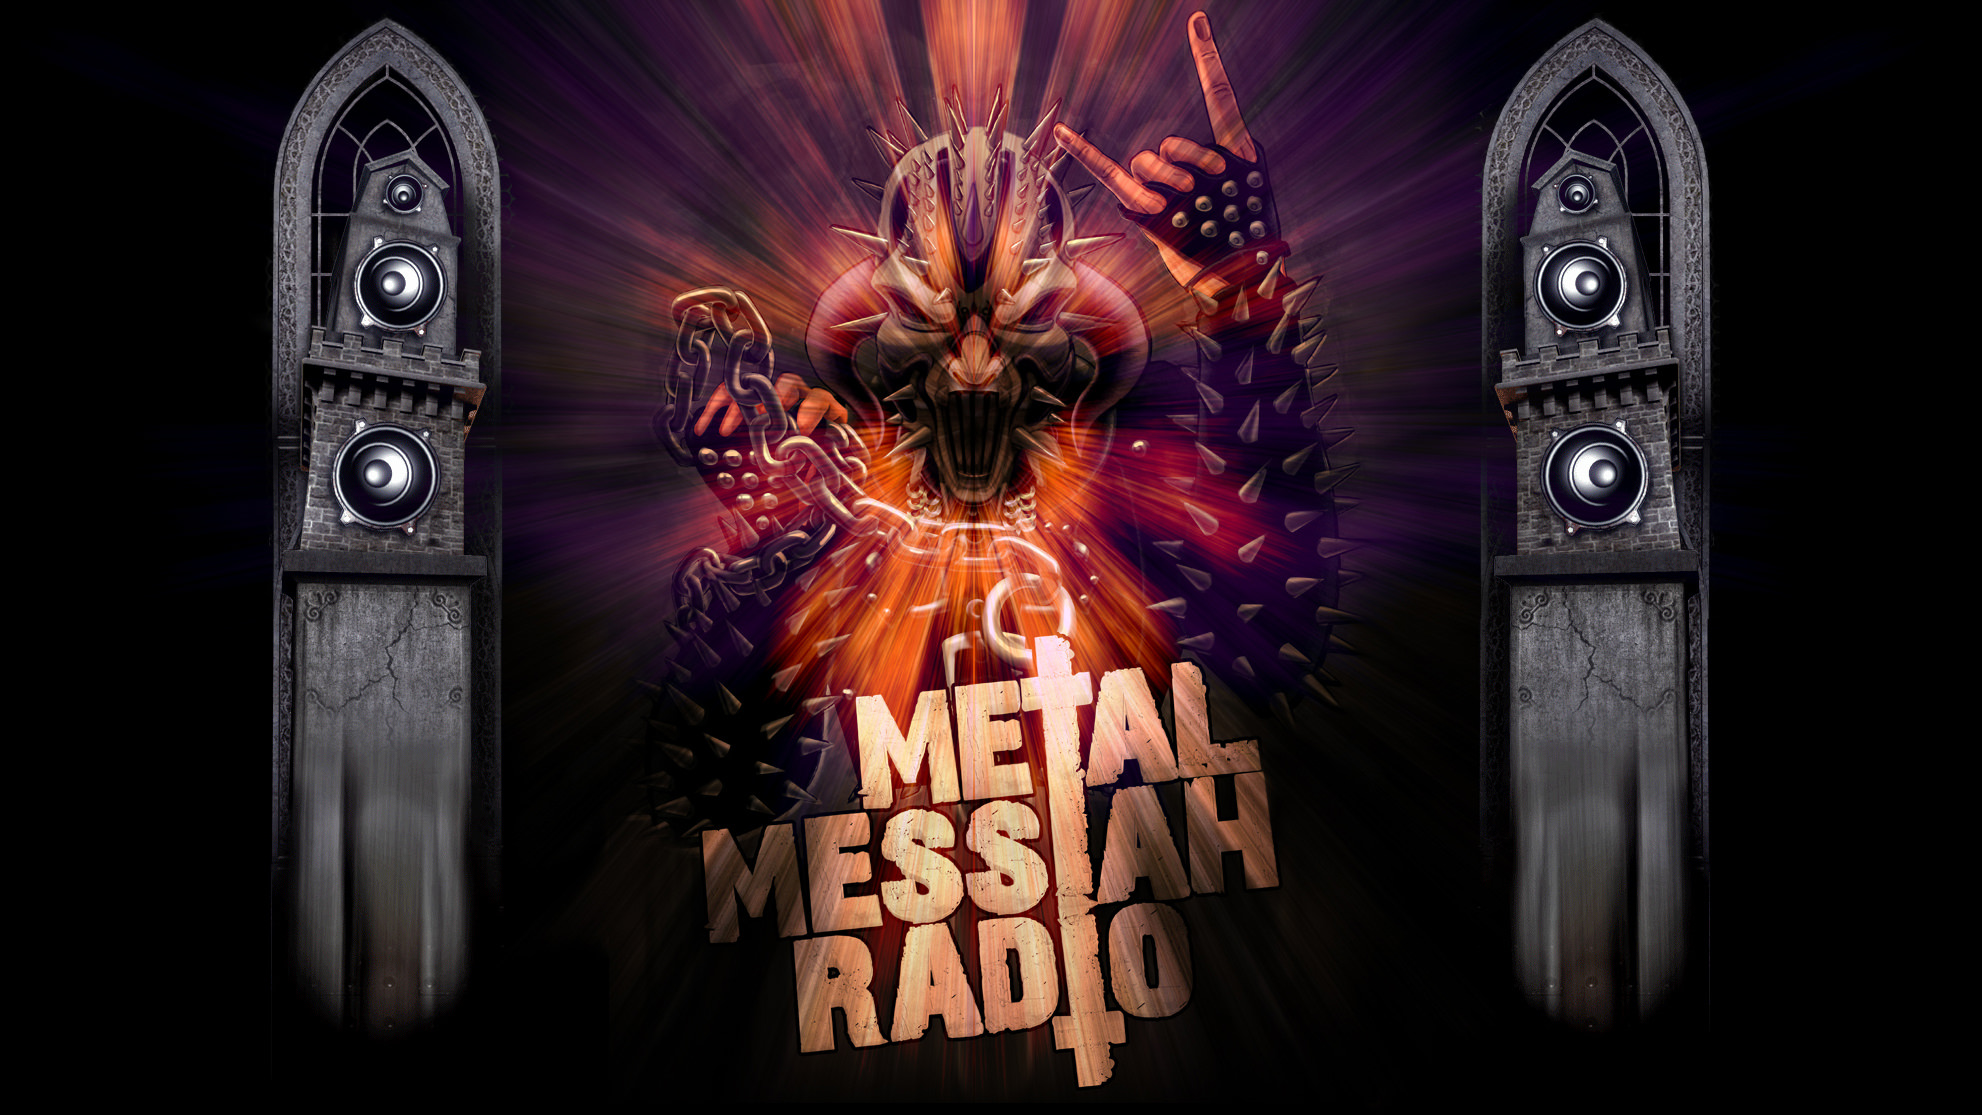 MetalMessiah